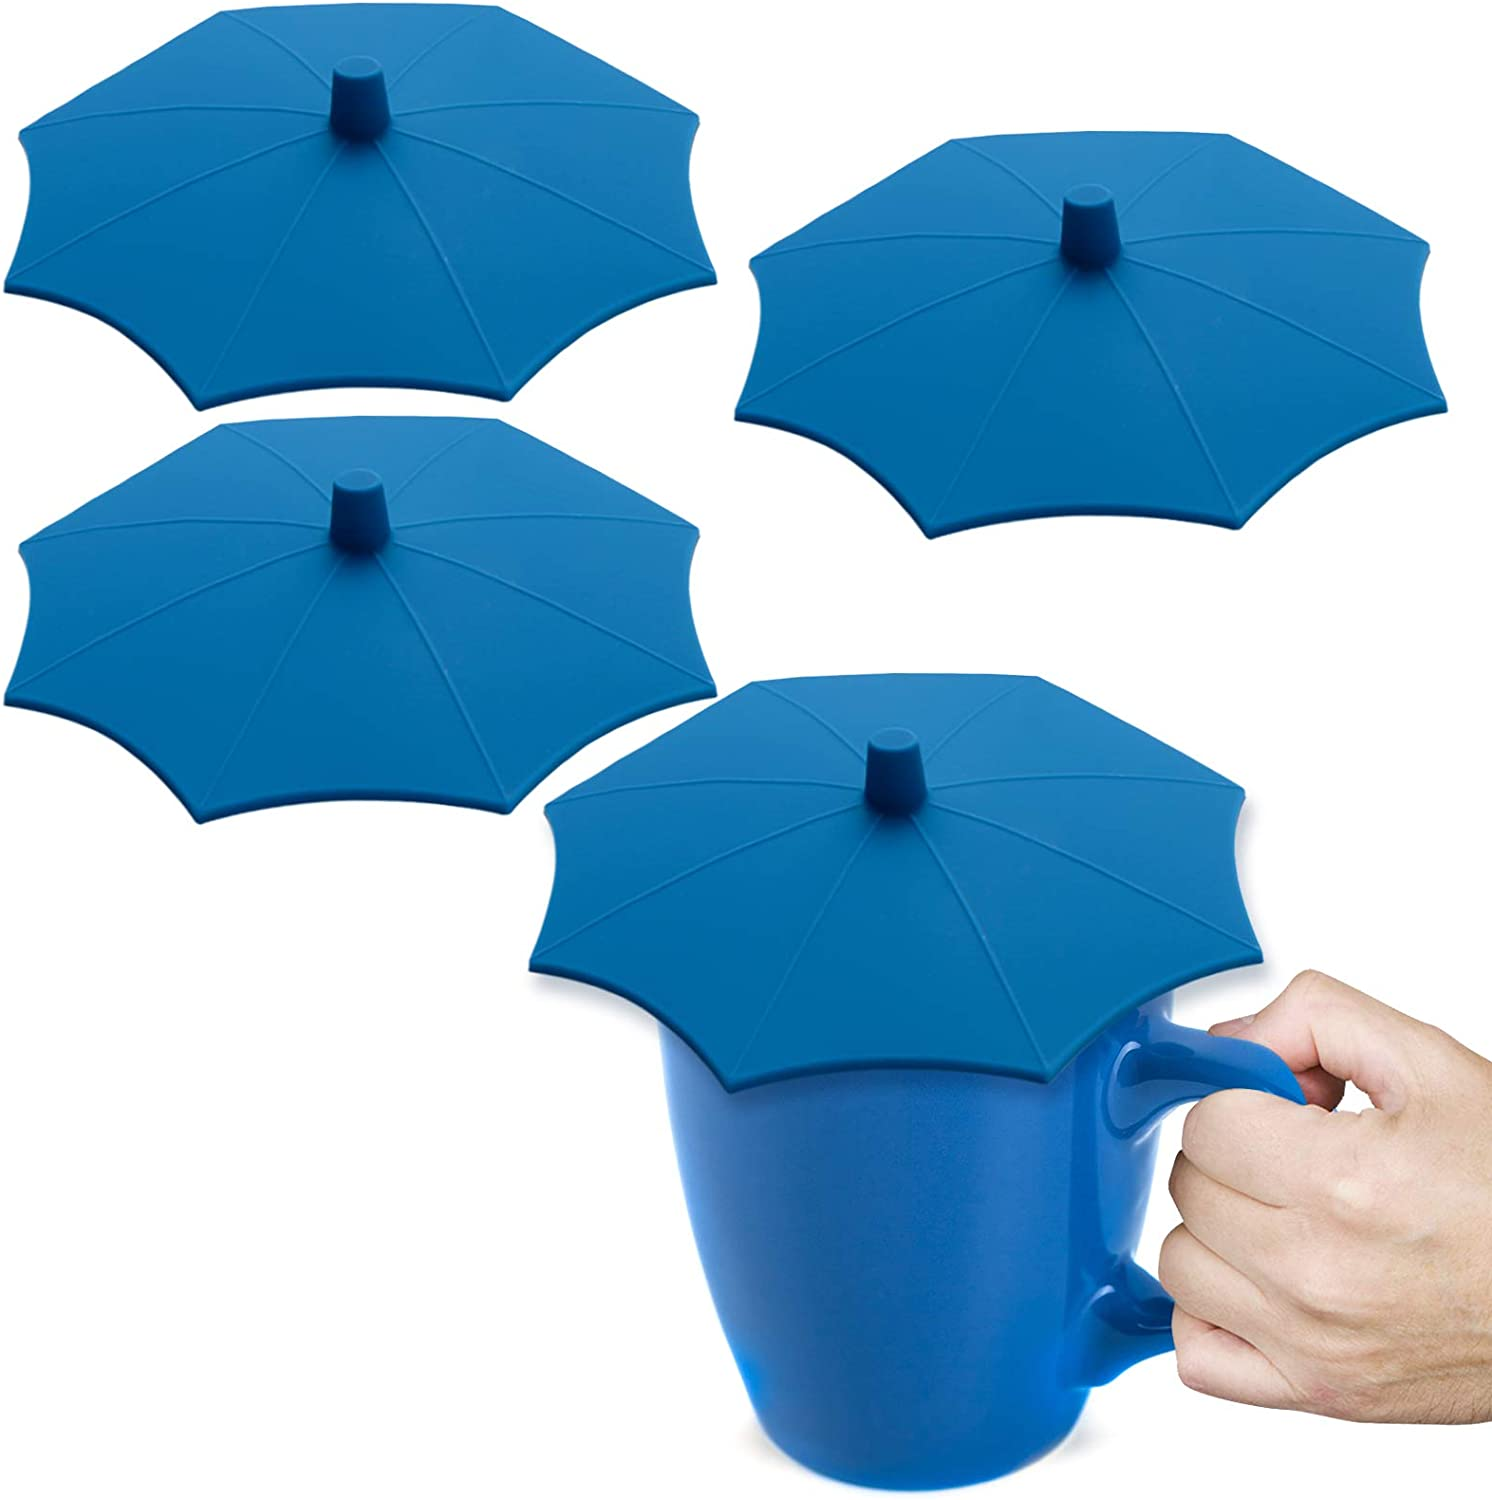 NEW Silicone Umbrella Cup Covers 4-Pack(Upgrade Oct. 2020), Dust-Proof Food Grade Lids Keep Drinks Warm or Cold Longer, Lids for Mugs, Tea Pots, Flexible Mug Covers, Cup Lids for Coffee&Tea. (Blue)